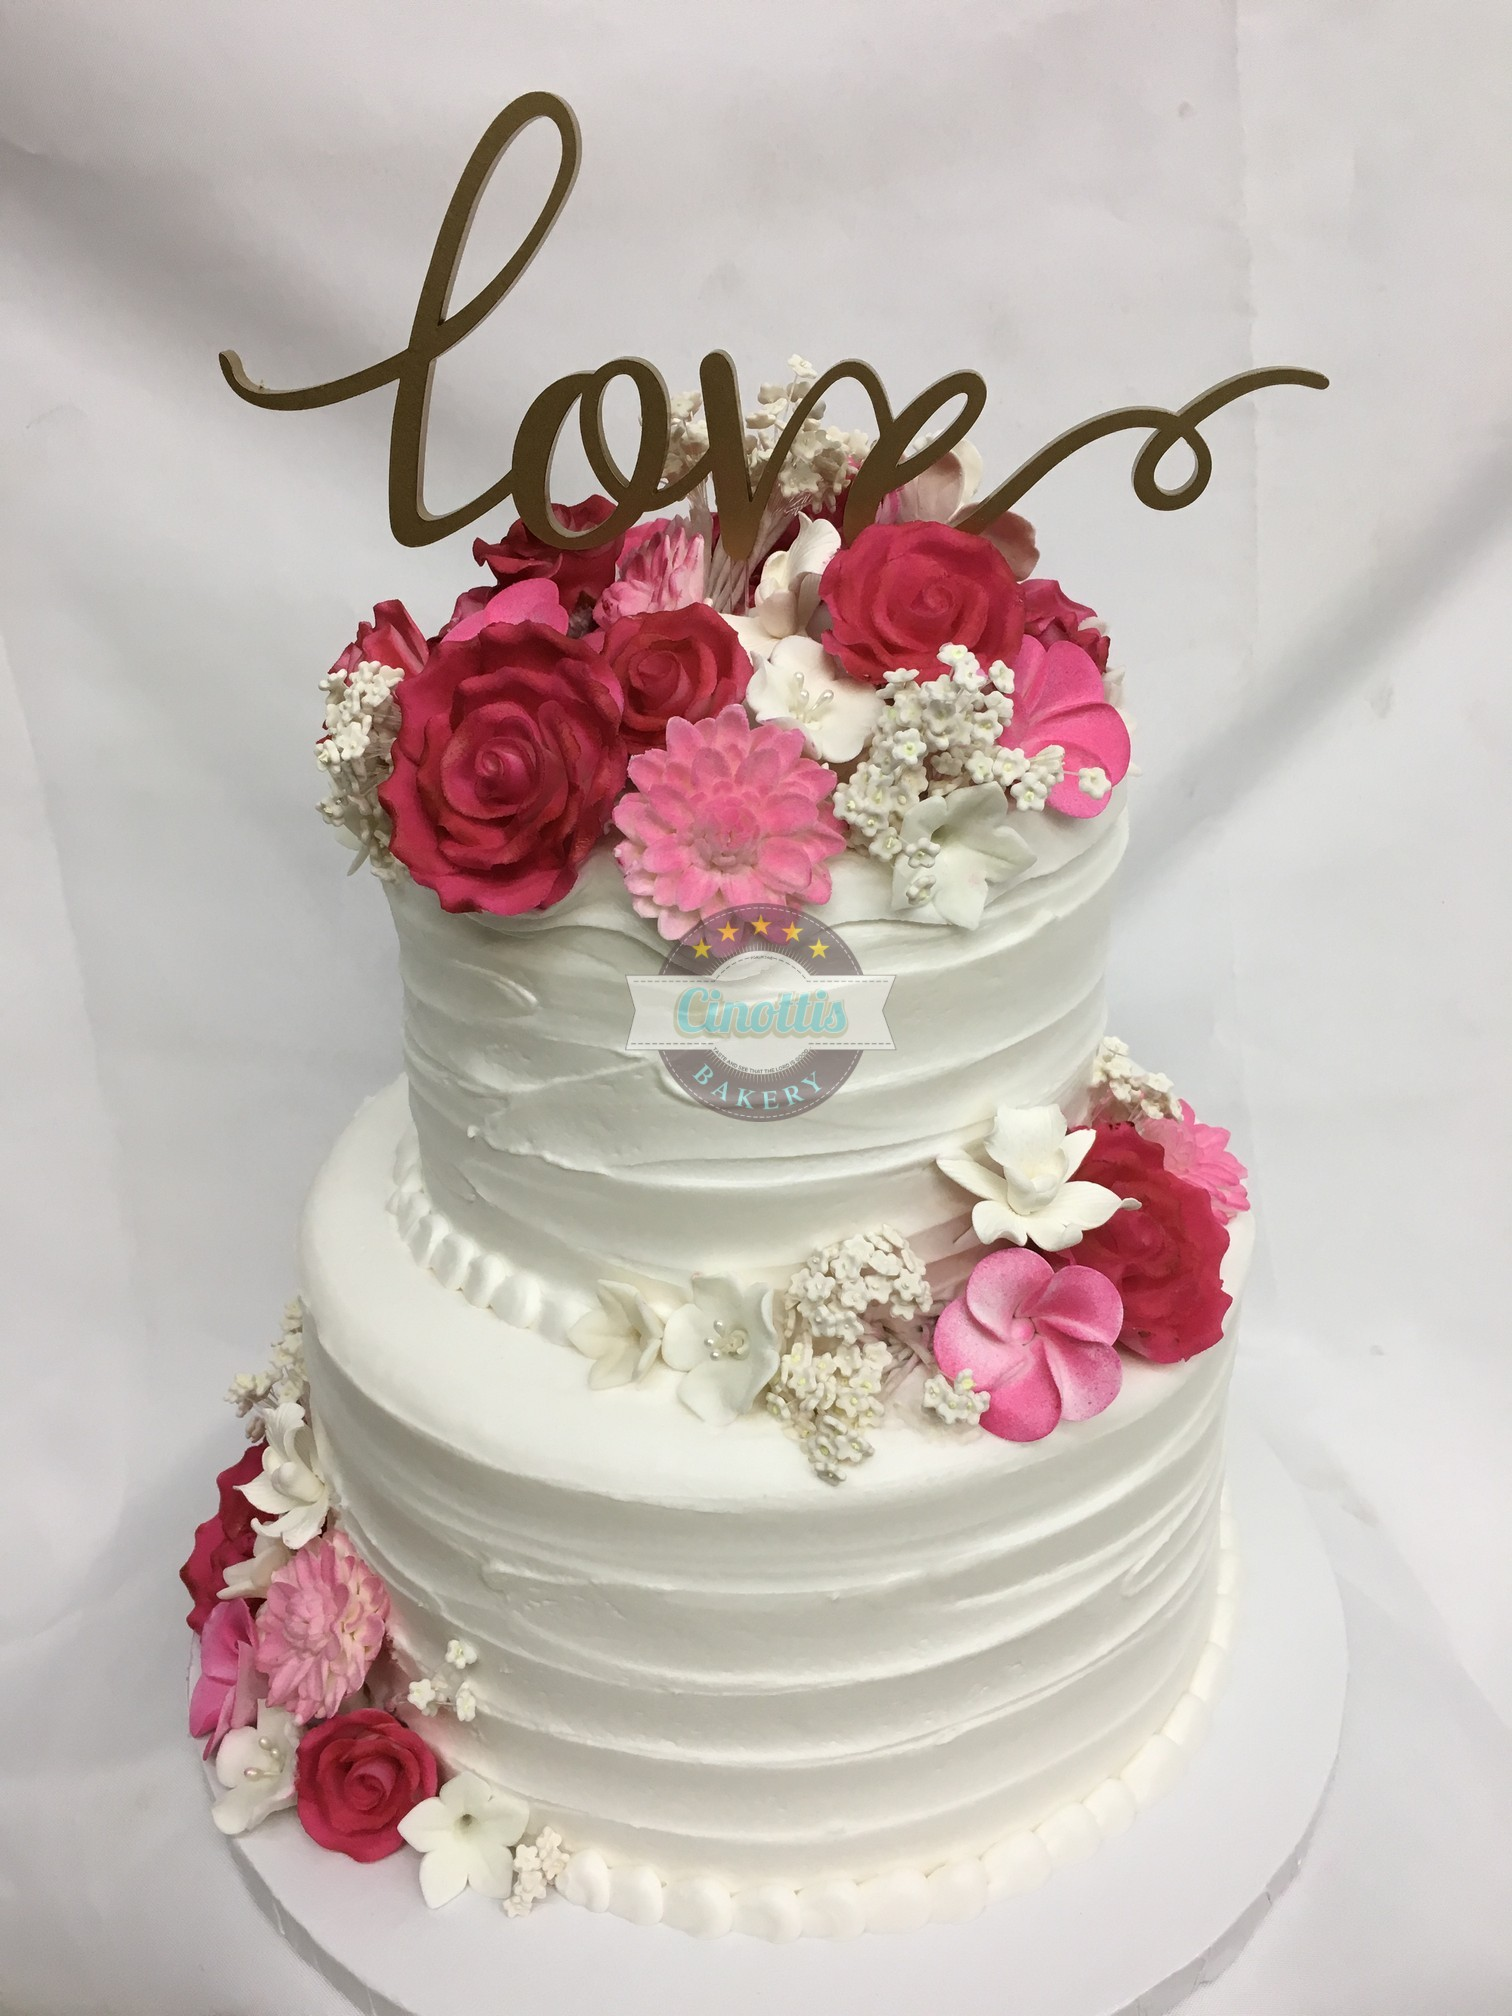 Semi-Textured Buttercream, Cake, Buttercream, Flower, Wedding, Gumpaste, Birthday, Shower, Party, Fondant, Jacksonville, Beach, Florida